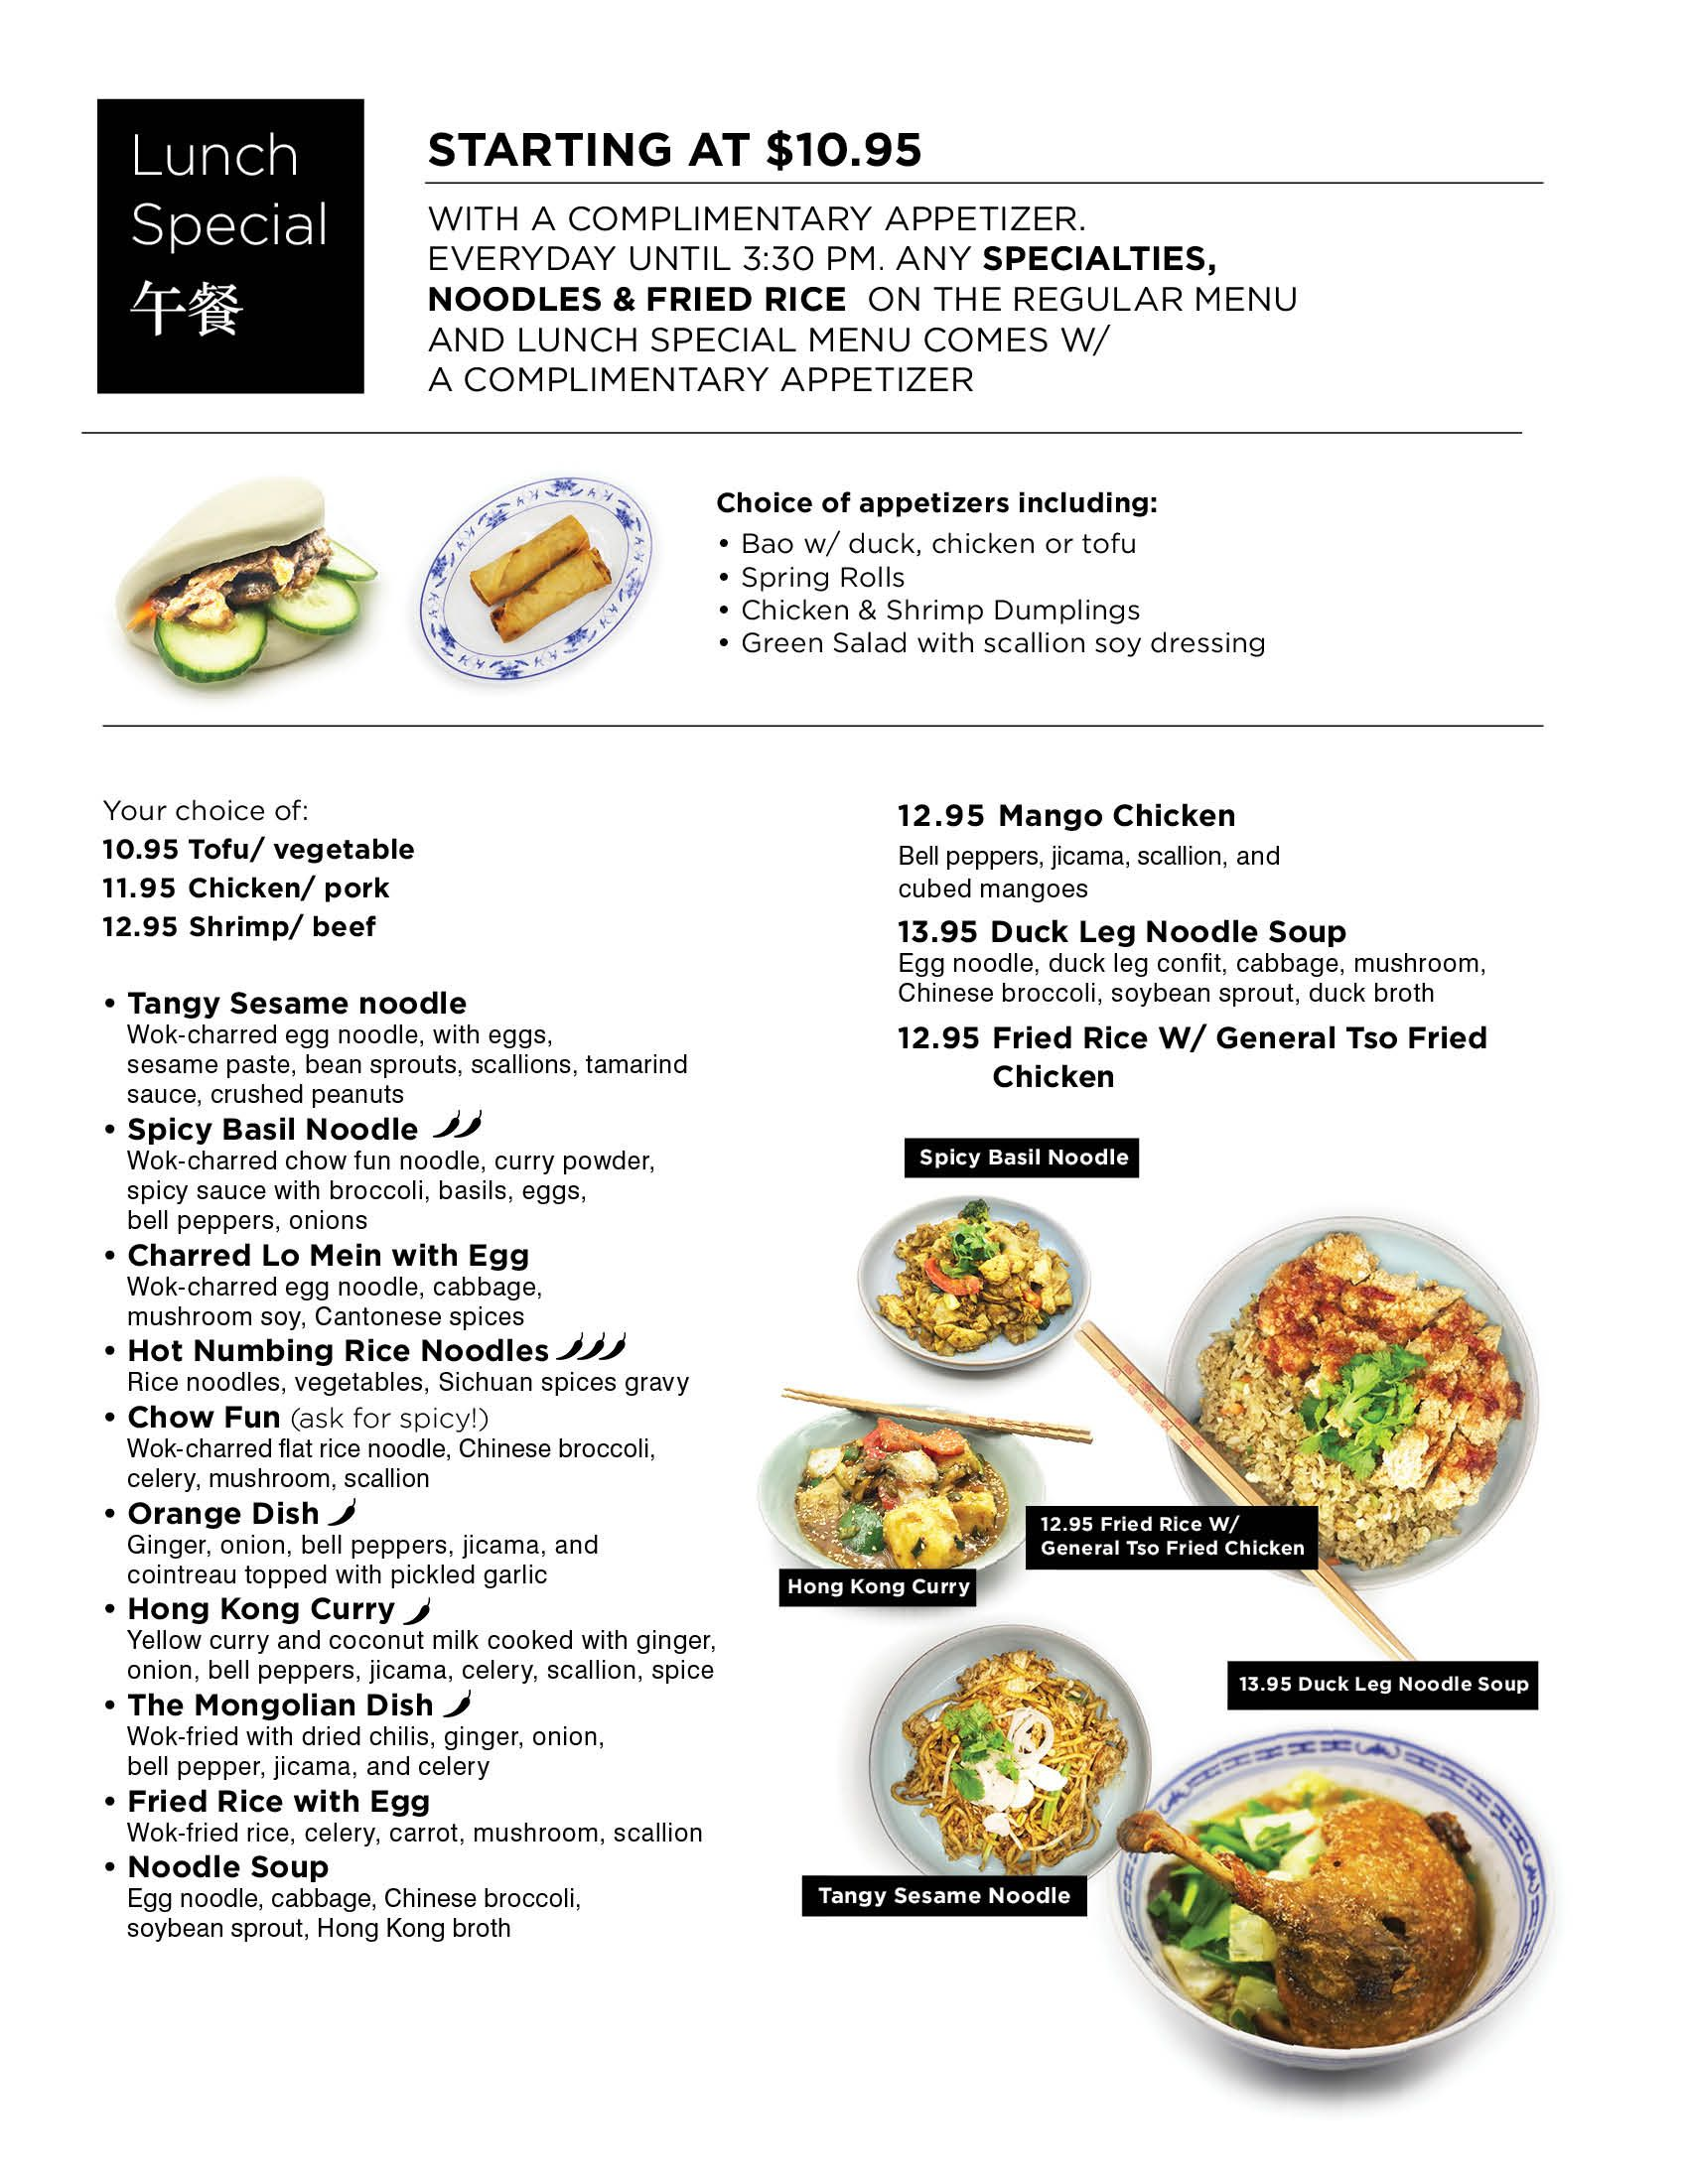 Lunch Specials, Food, Spring Rolls